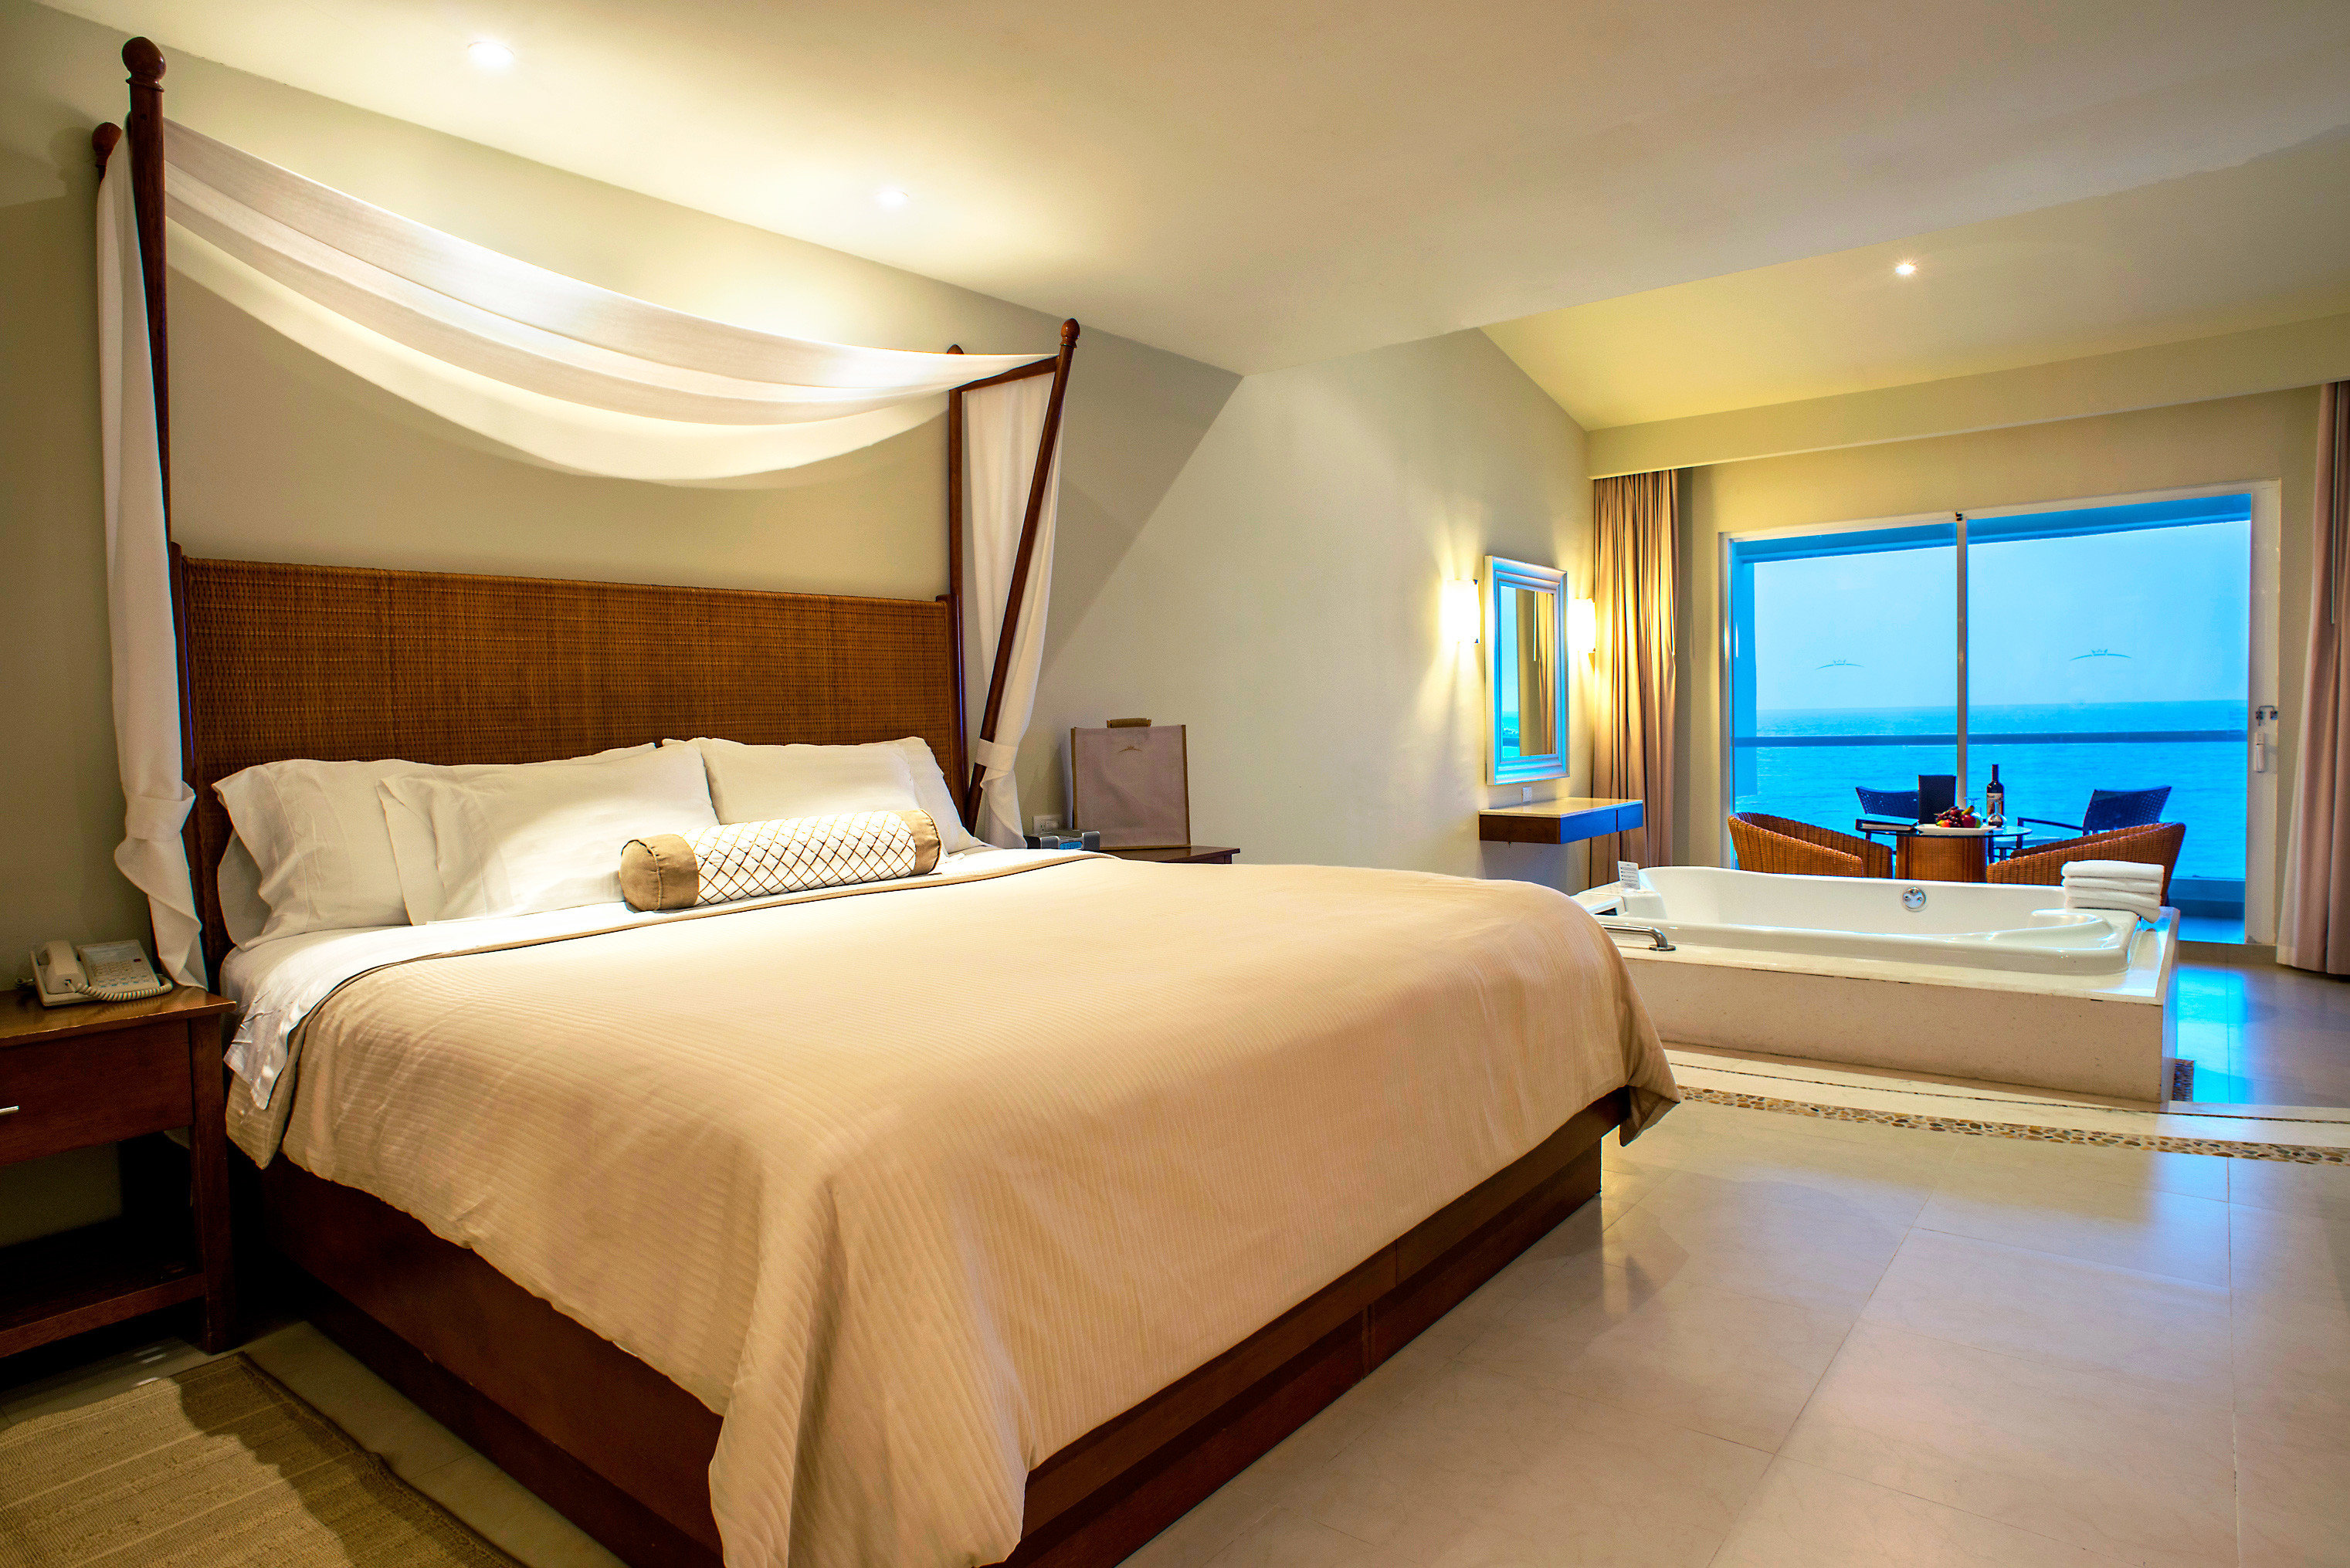 Adult-only All-Inclusive Resorts Beachfront Bedroom Cancun Hotels Luxury Mexico Modern Patio Scenic views Suite bed floor indoor wall hotel ceiling room property estate real estate cottage interior design Villa apartment tan